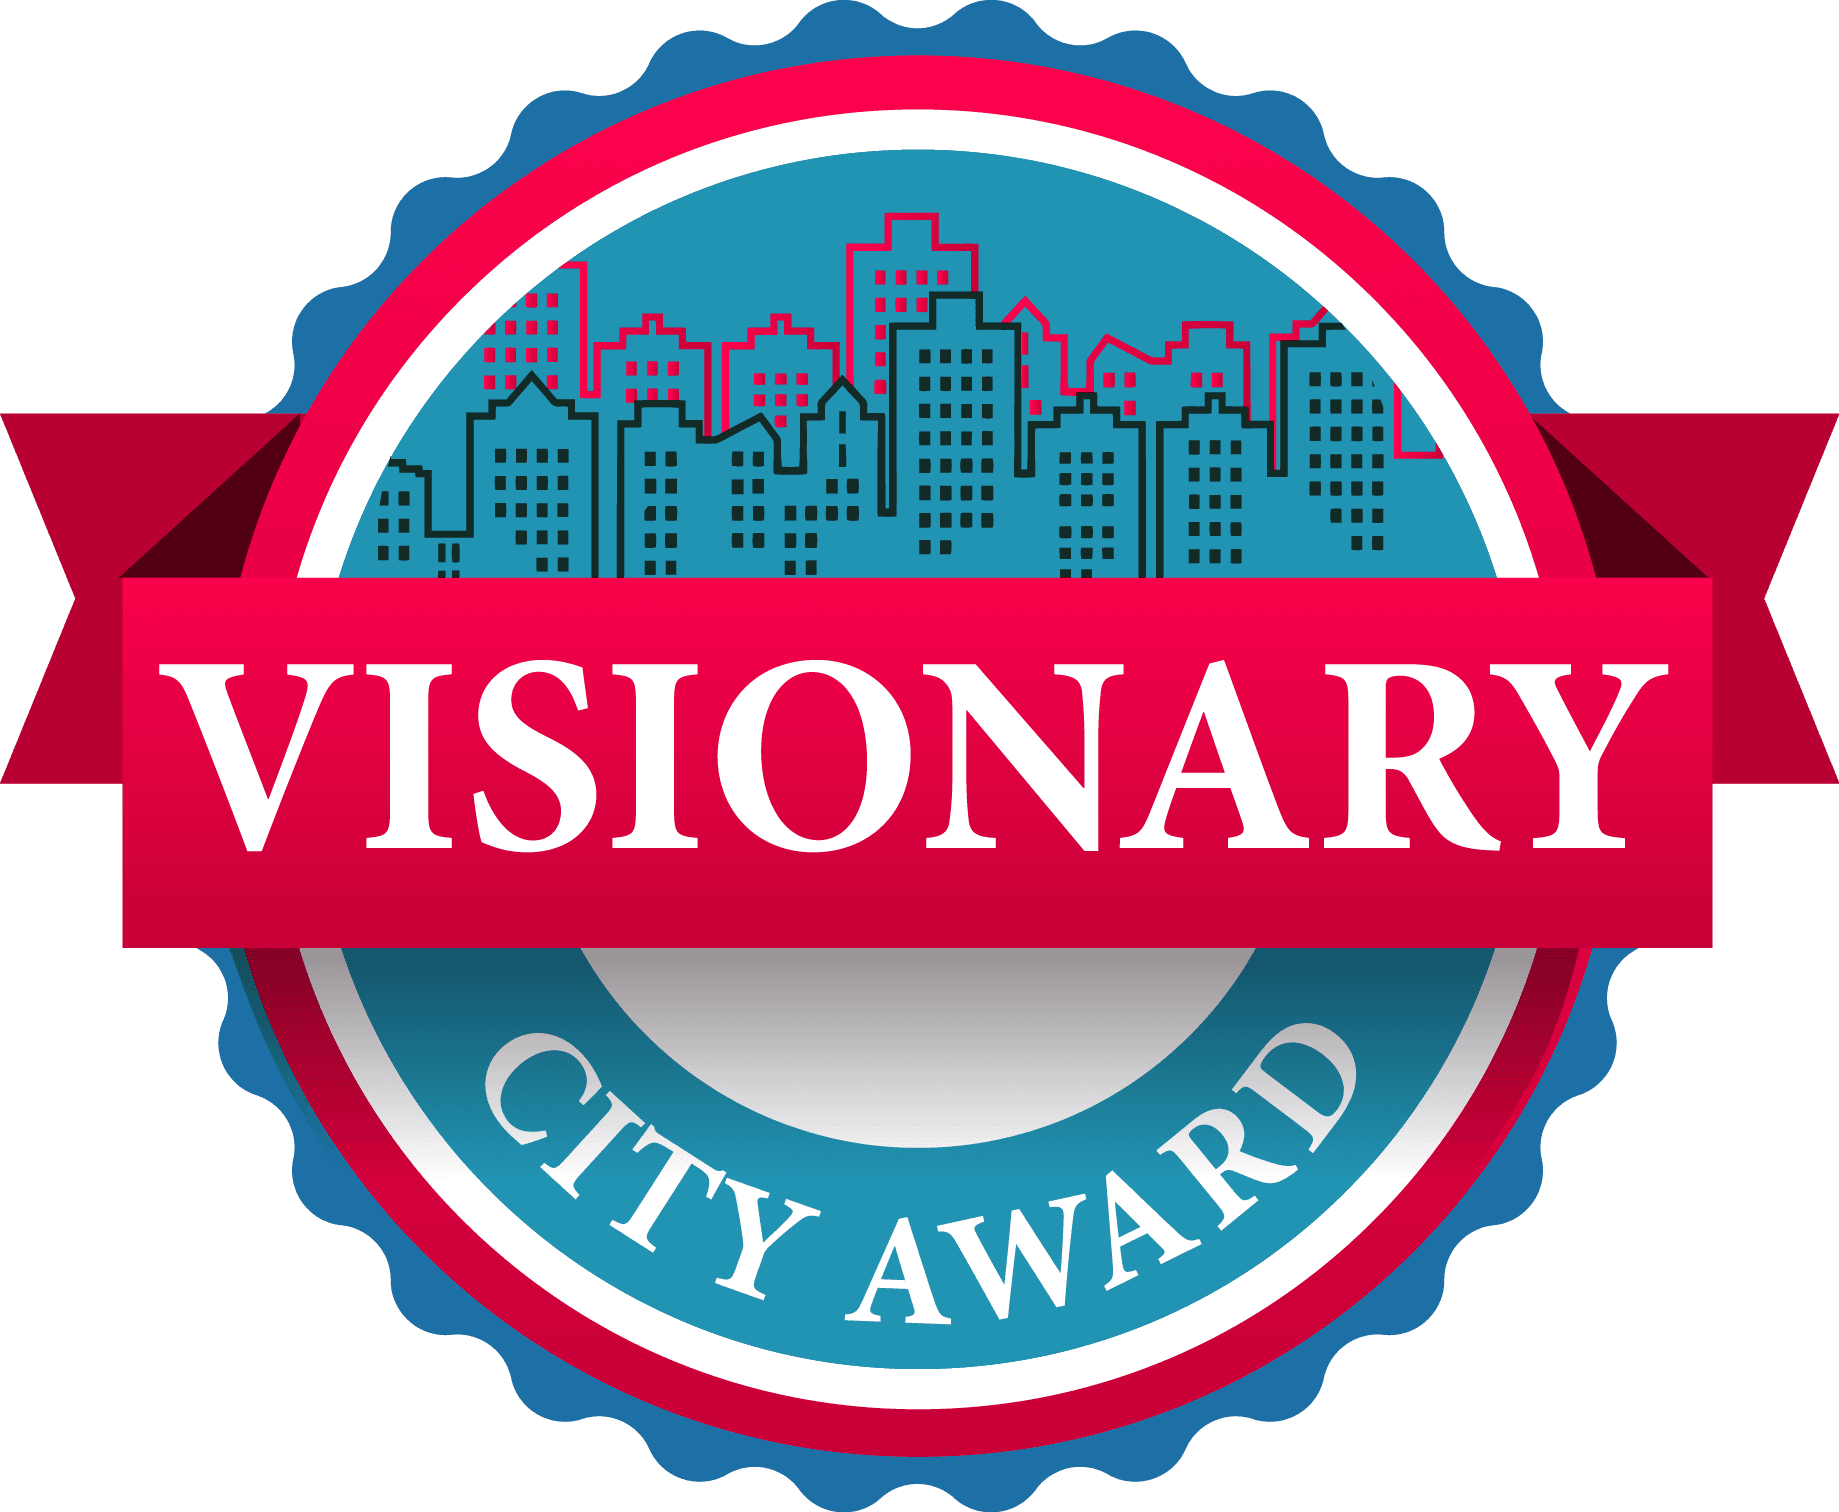 logo. Visionary City Award